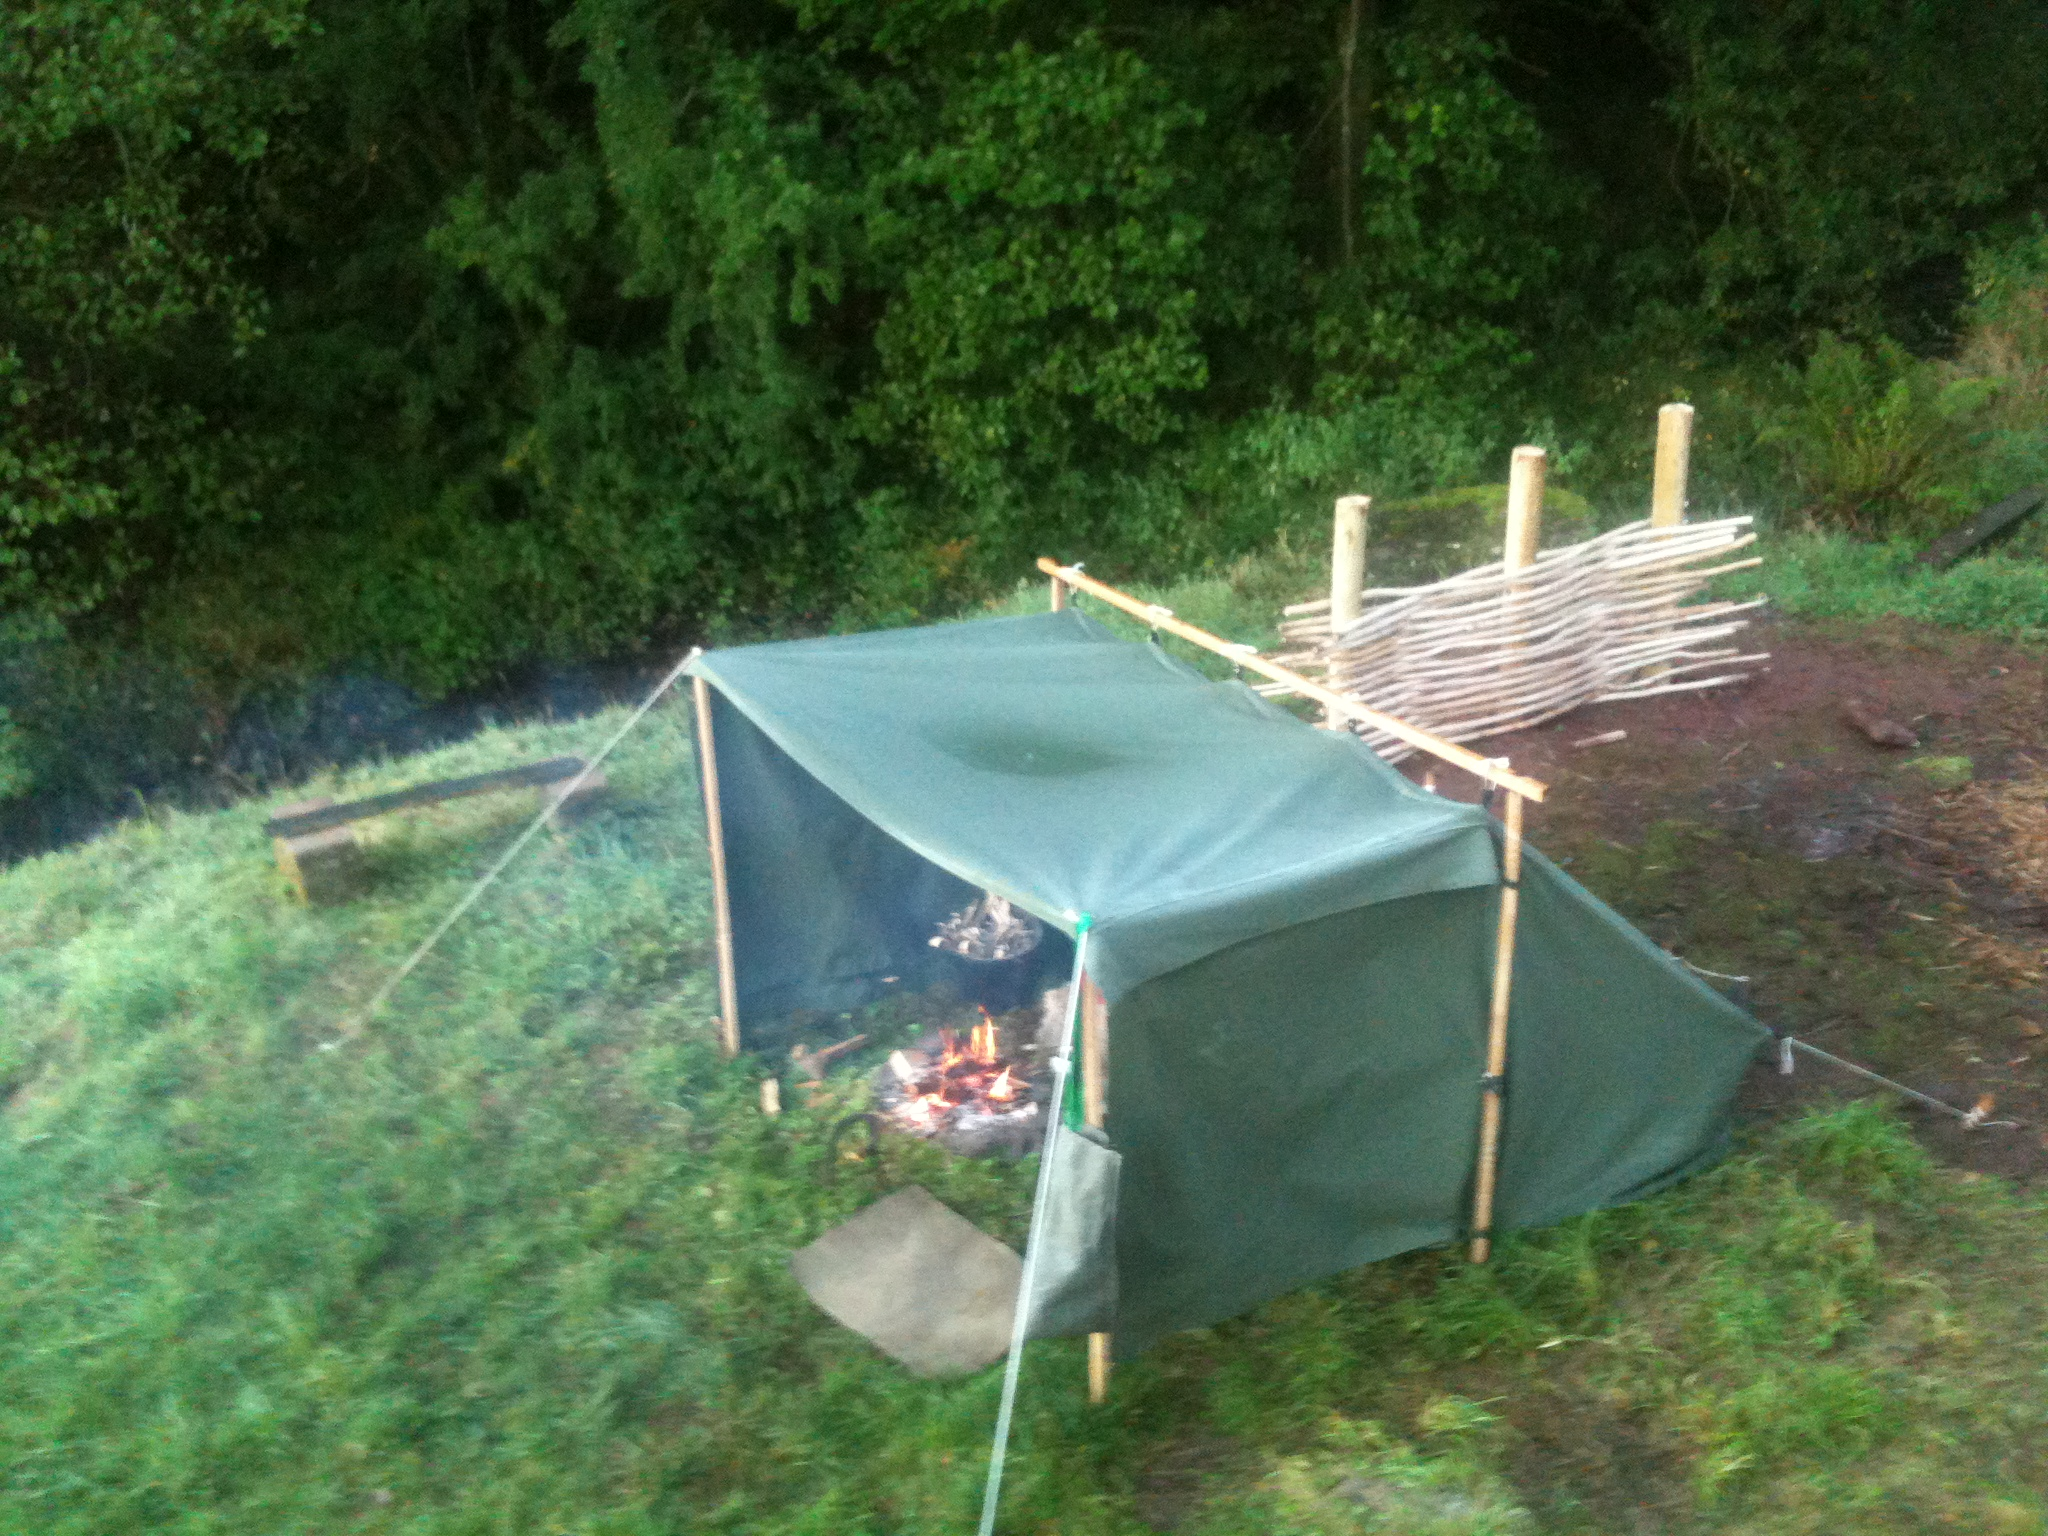 I M Making Poles For It That Will Allow Me To Use As A Baker Type Tent